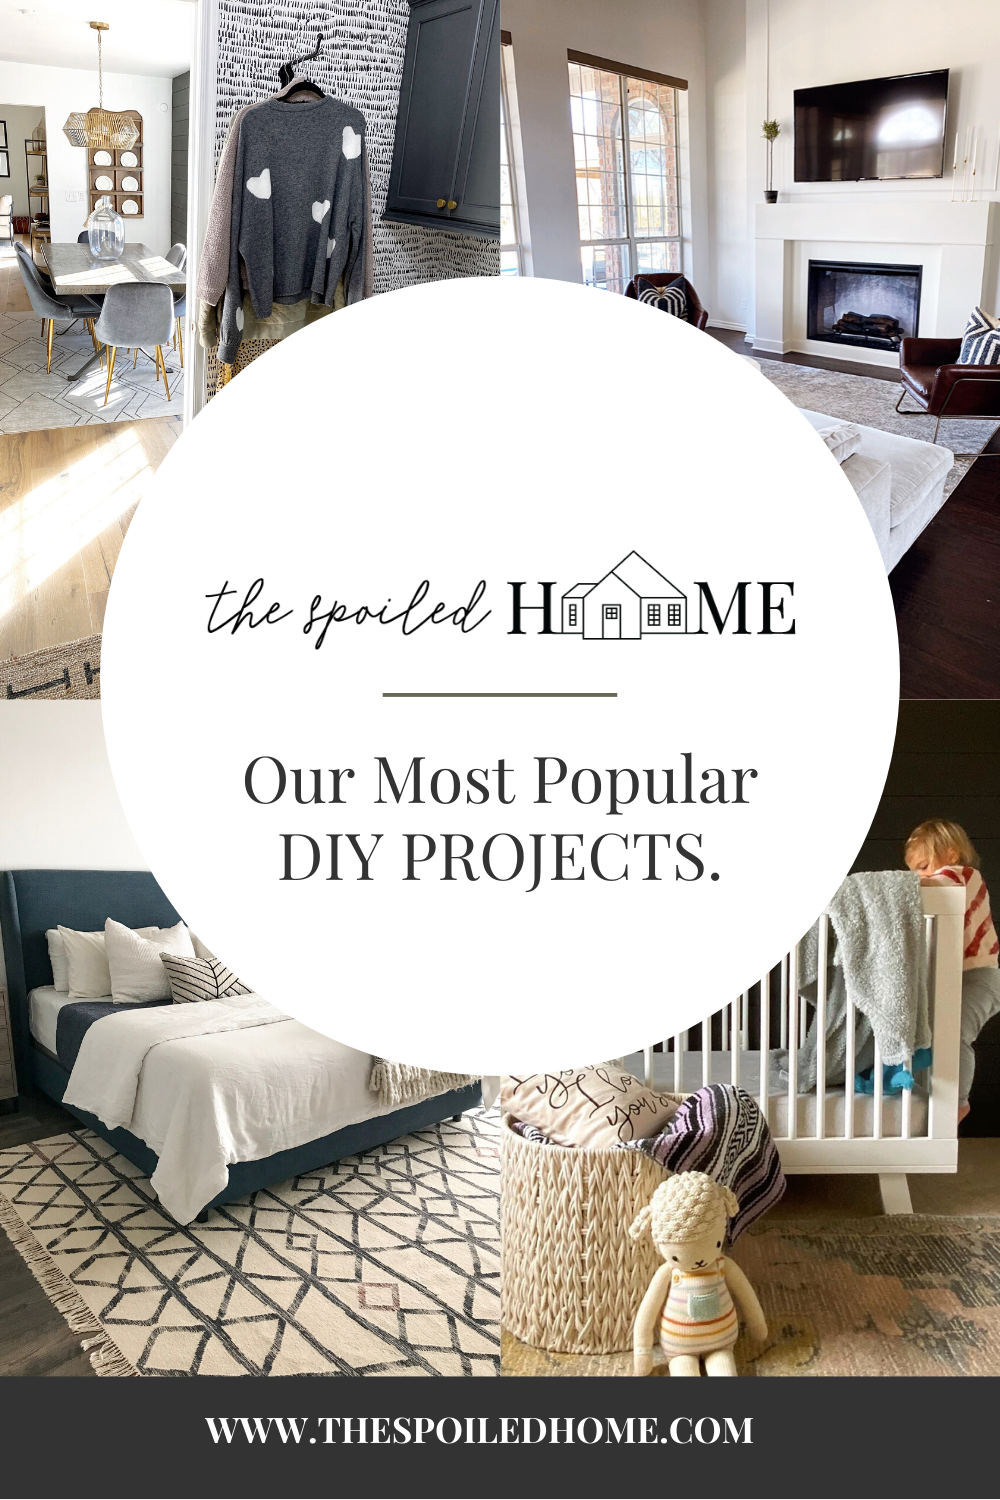 Since we started The Spoiled Home, Shalia and I have tackled a ton of DIY projects between the two of us. Throughout the years we have shared our ever-evolving interiors with you, as you cheered… The post Our Most Popular DIY Projects appeared first on The Spoiled Home.